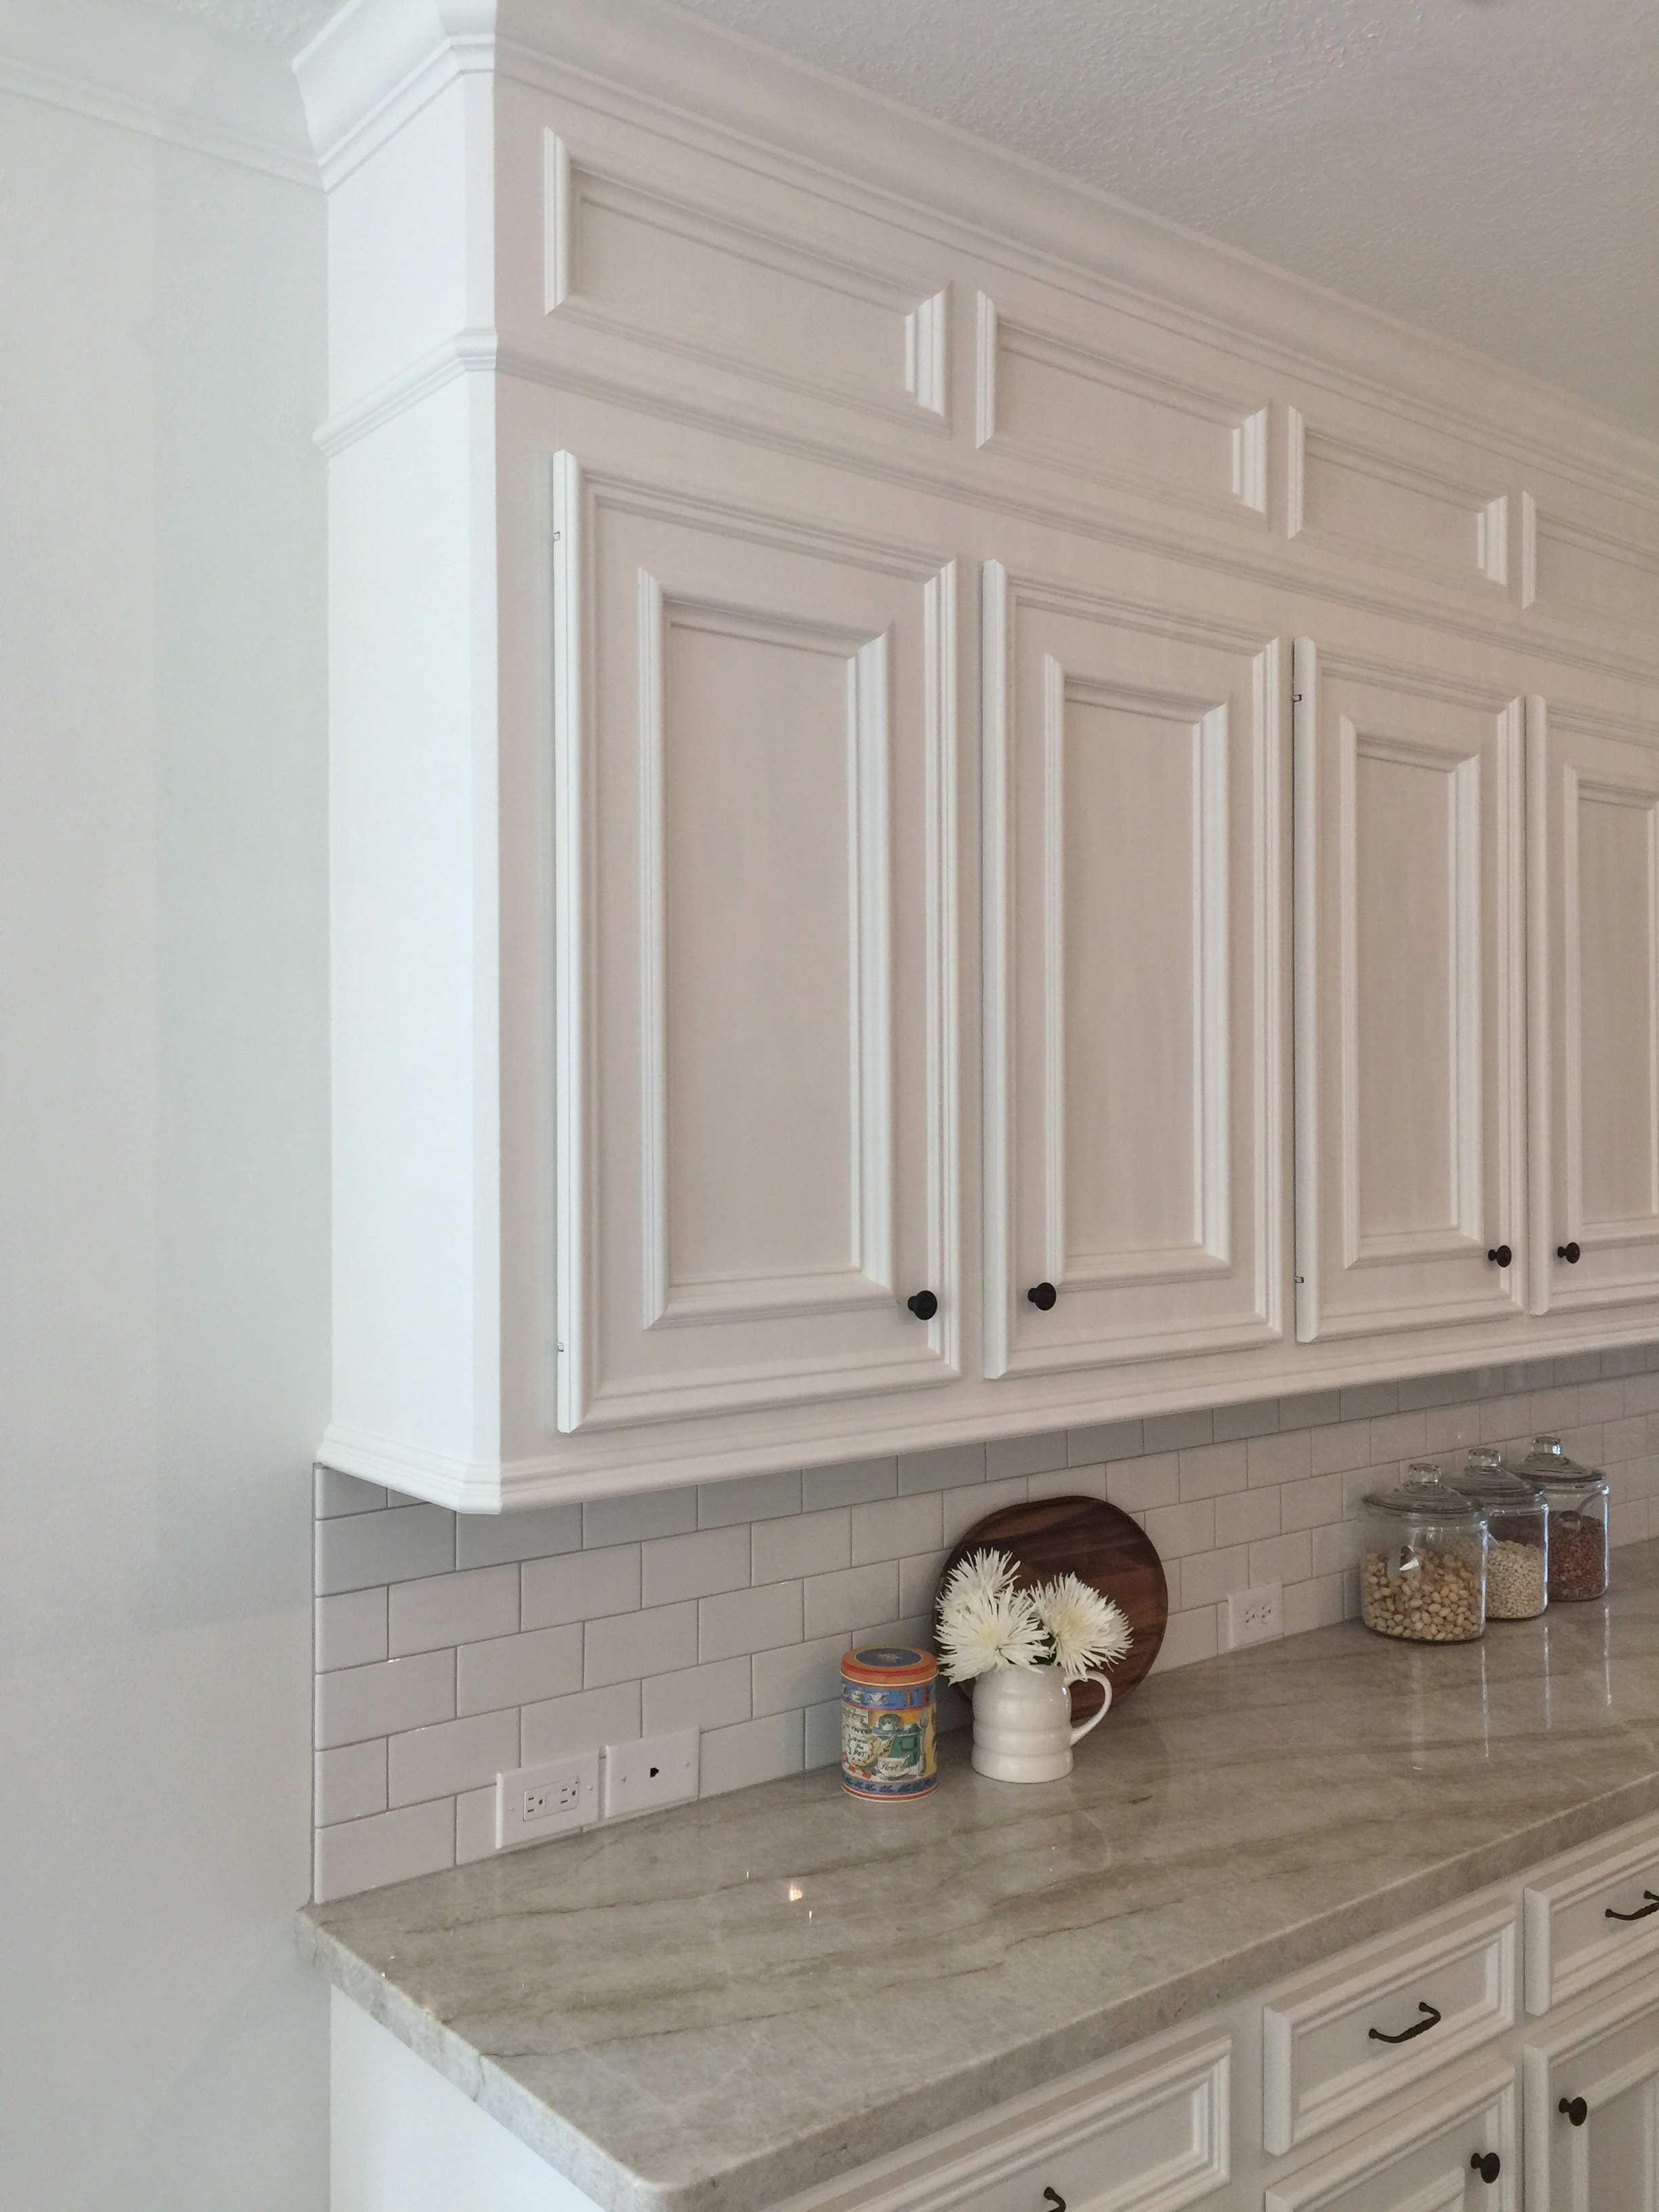 After - Modified cabinetry with new knife hinges replacing exposed hinges